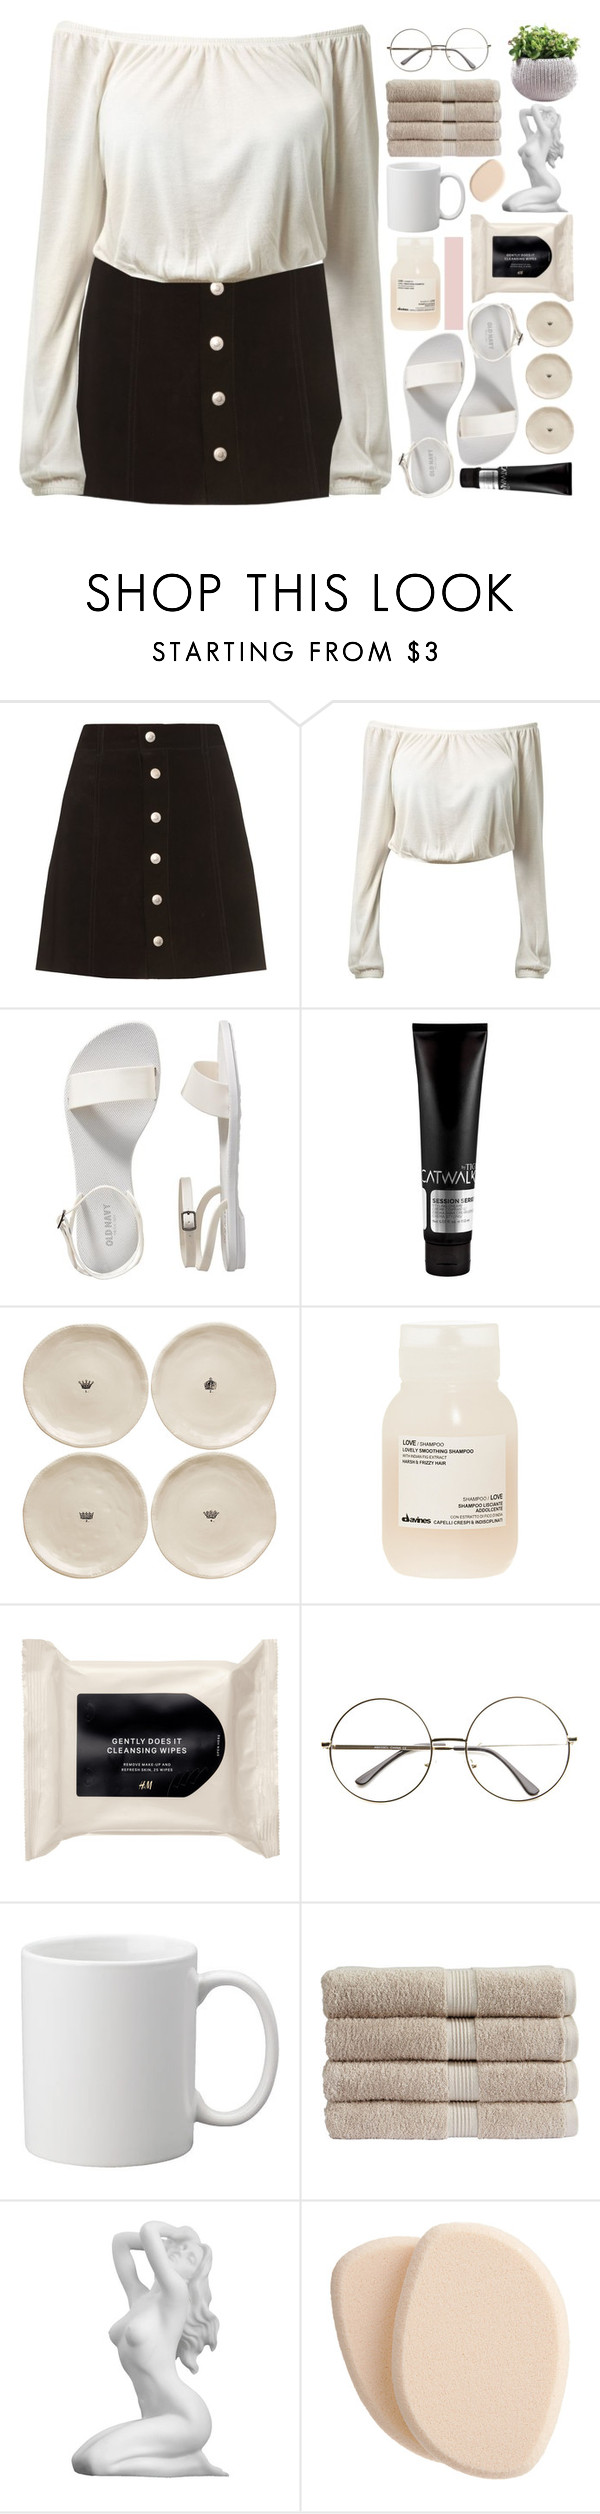 """""""temporary fix"""" by alanalove-123 ❤ liked on Polyvore featuring AG Adriano Goldschmied, Old Navy, TIGI, Magenta, Davines, H&M, Christy, Clé de Peau Beauté and topsetsofadhora"""